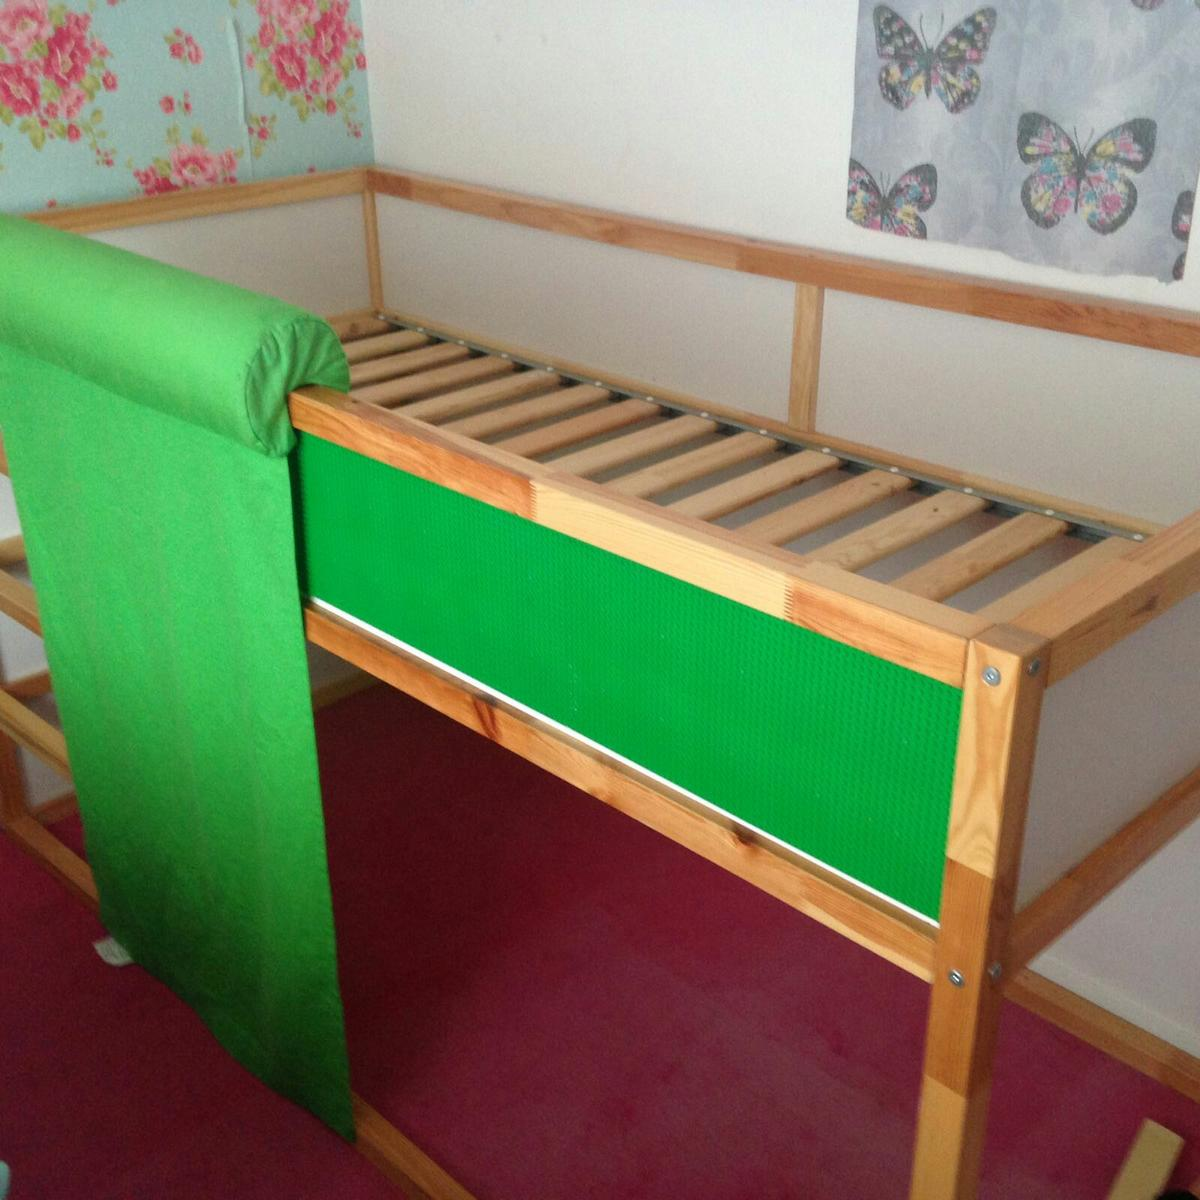 Picture of: Kuro Ikea Low Mid Sleeper Lego Bed In Ne29 North Shields For 60 00 For Sale Shpock